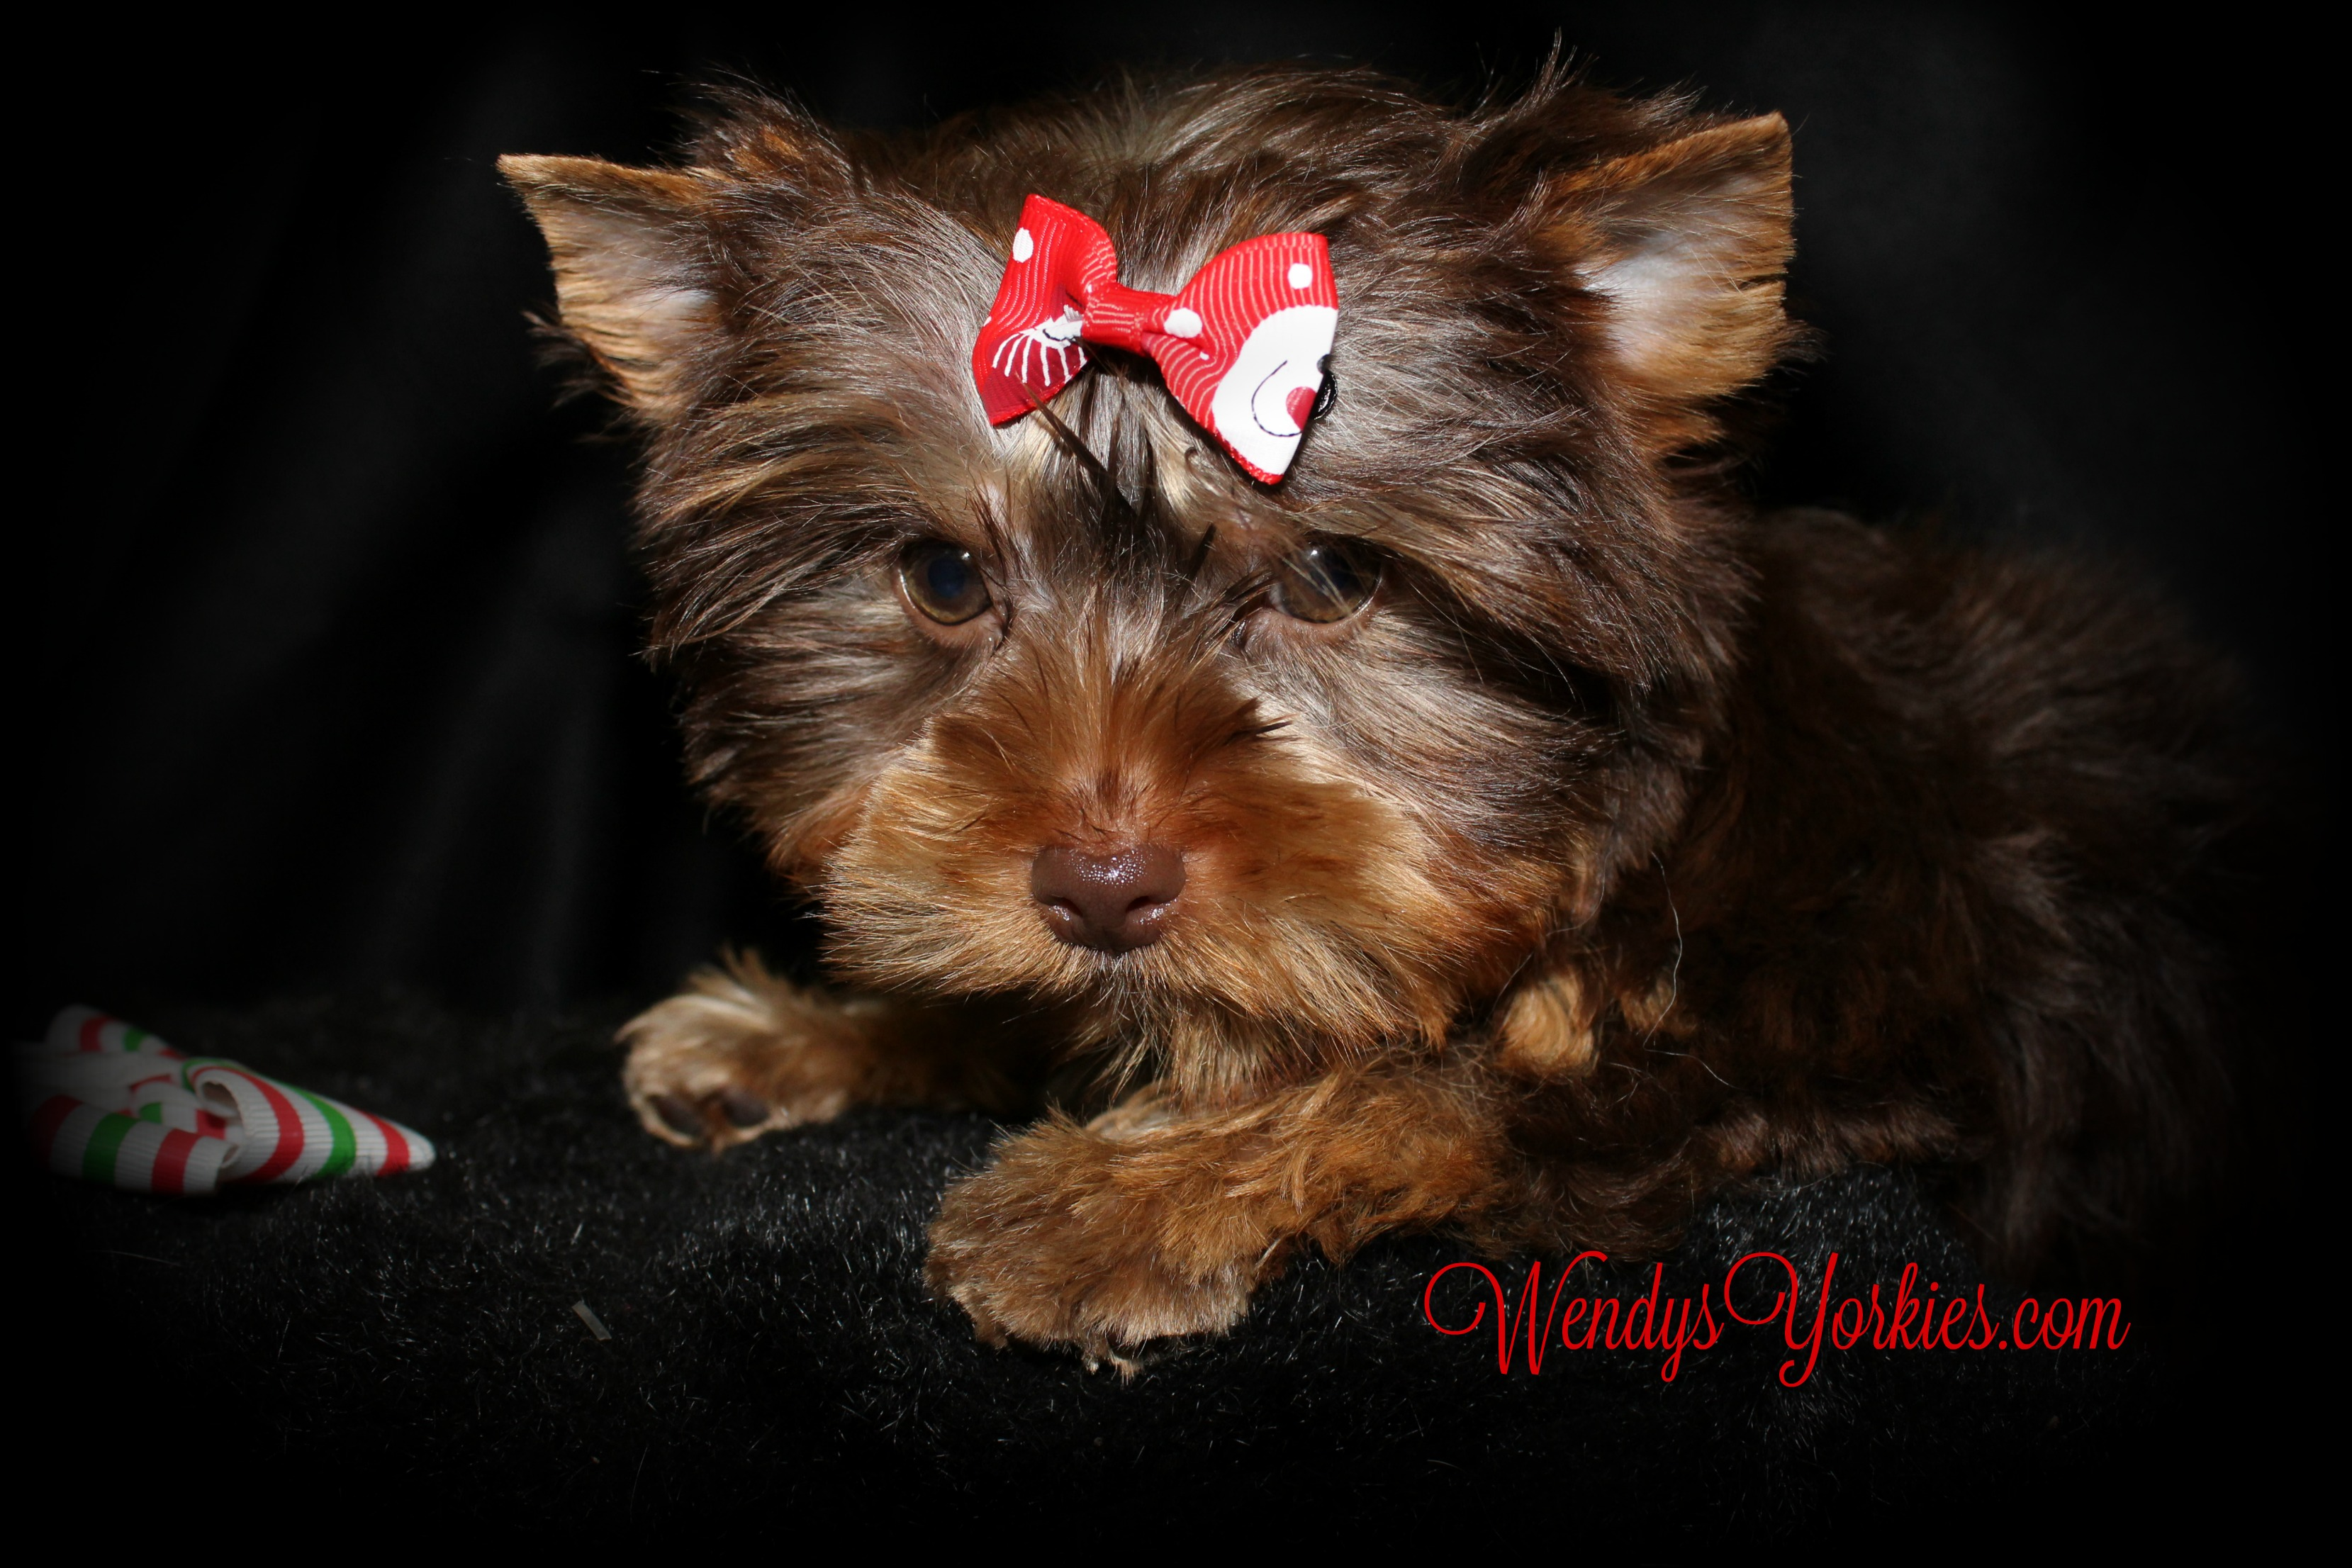 Male Chocolate Yorkie puppy for sale, WendysYorkies.com